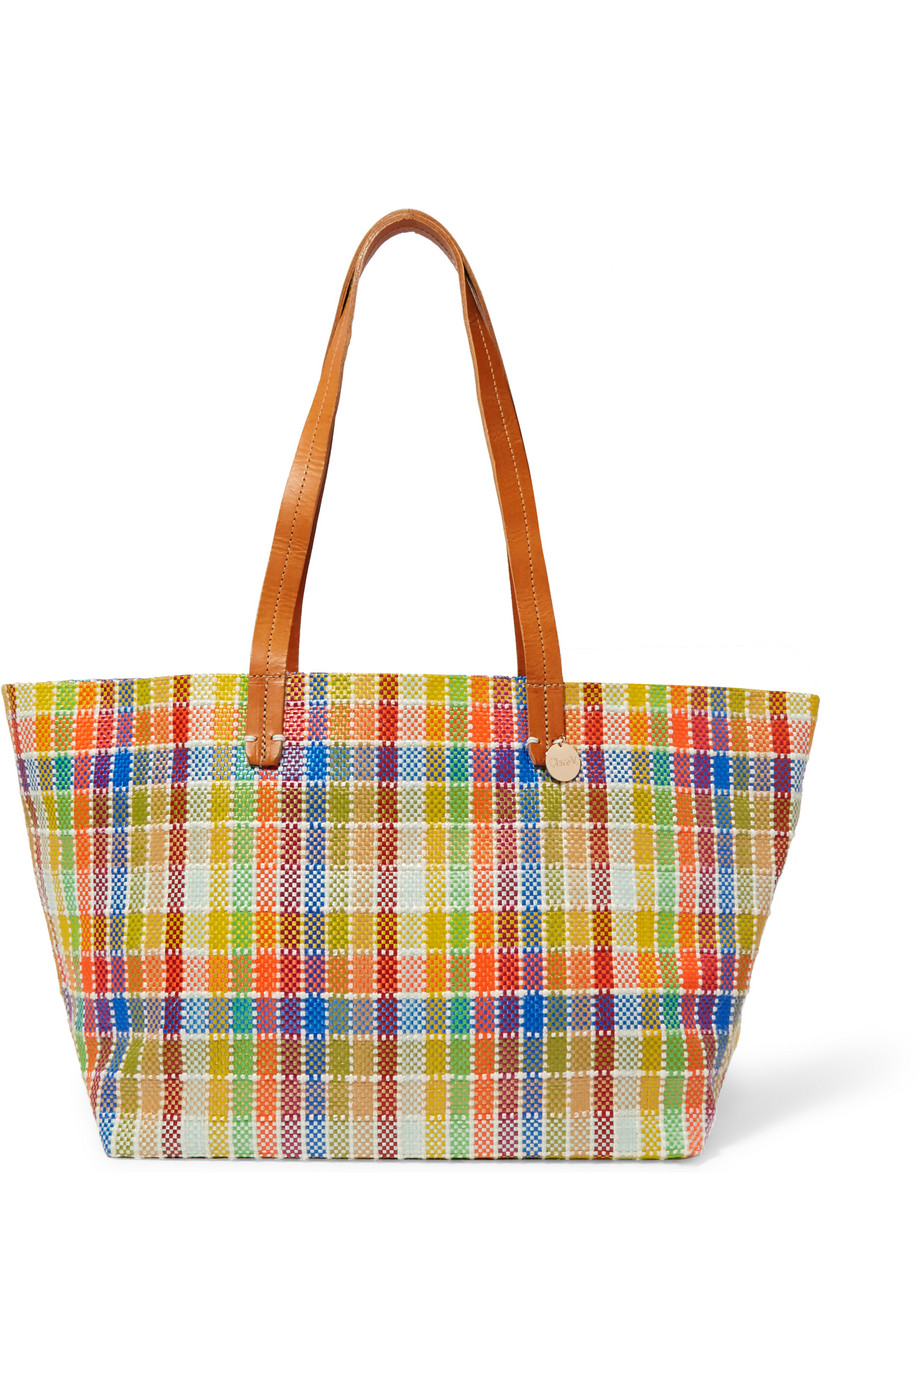 Clare V Suki Leather-Trimmed Plaid Raffia-Effect Tote, Yellow/Orange, Women's